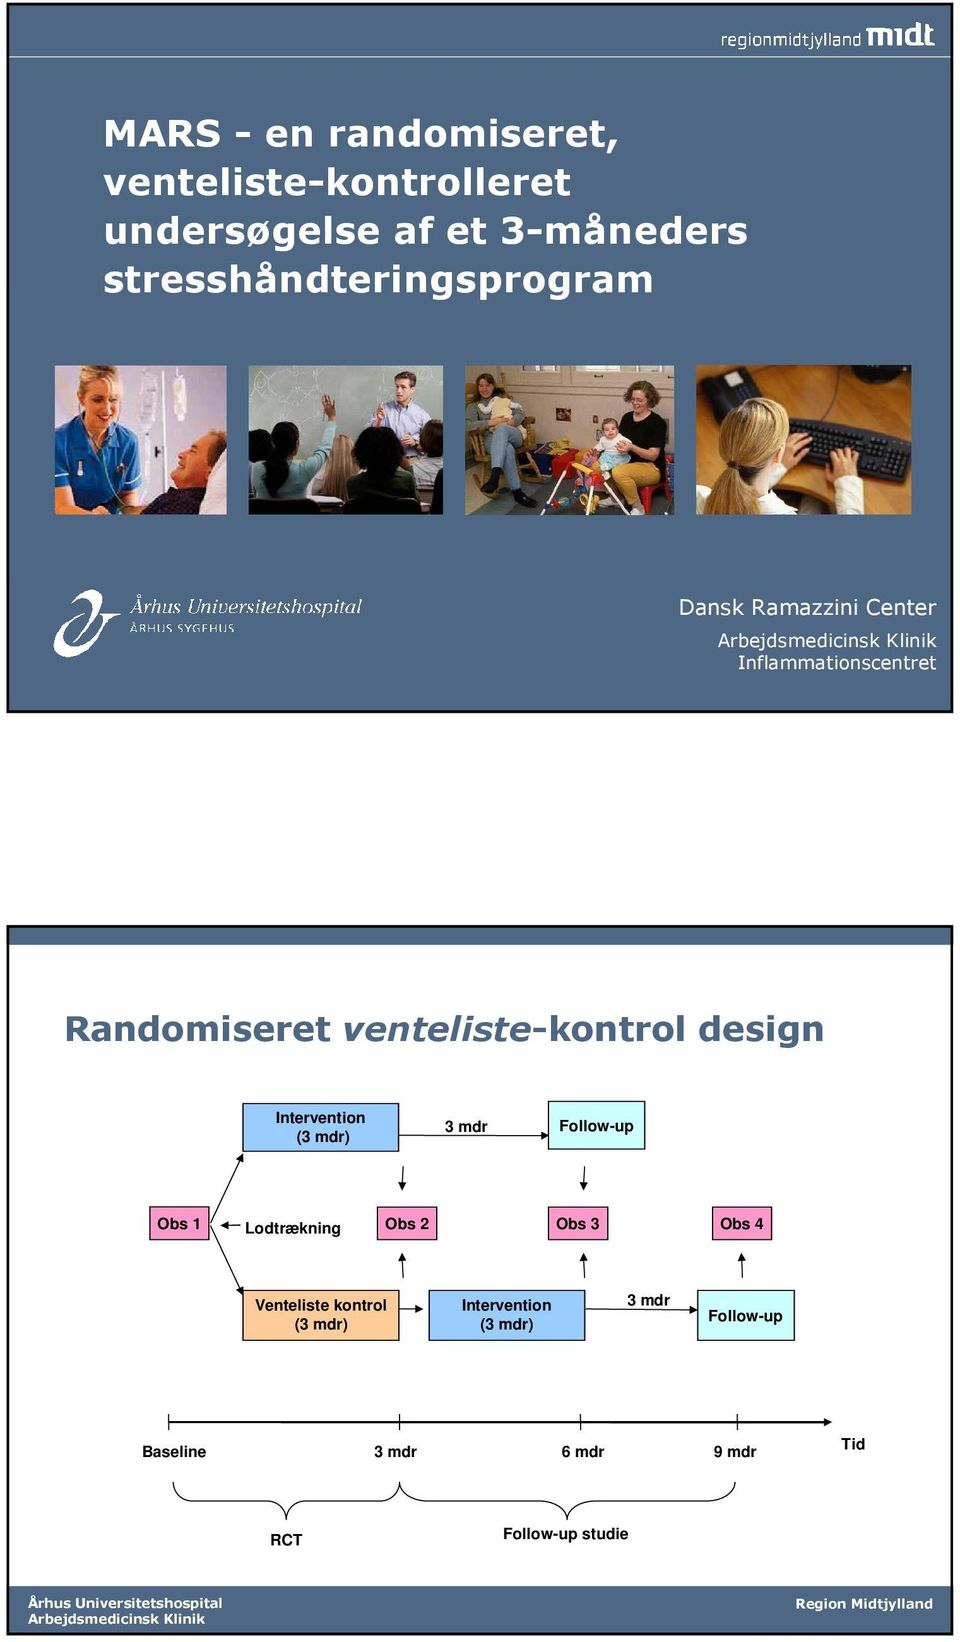 venteliste-kontrol design Intervention (3 mdr) 3 mdr Follow-up Obs 1 Lodtrækning Obs 2 Obs 3